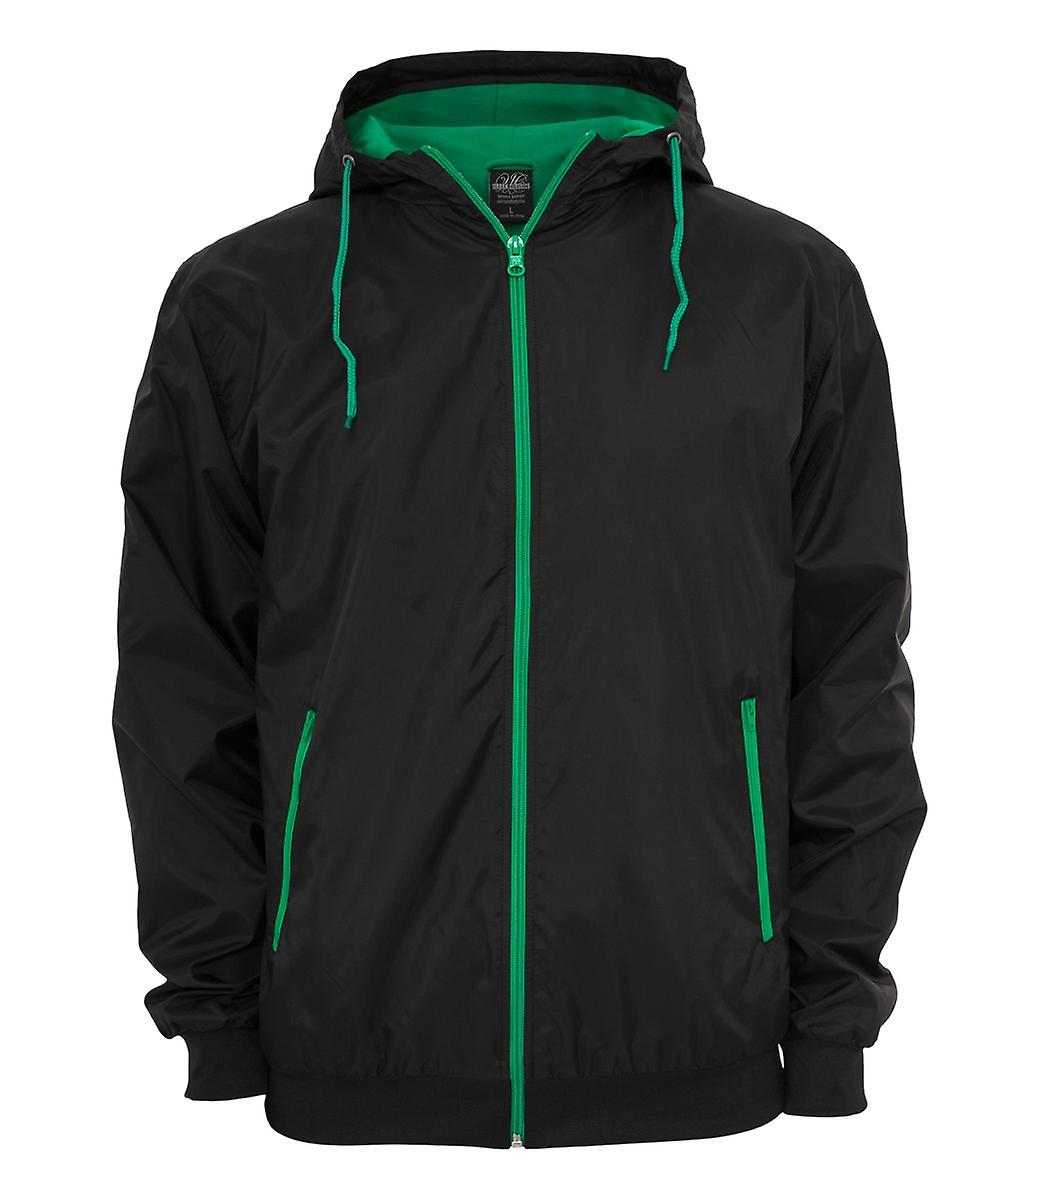 Urban Classics Contrast Windrunner